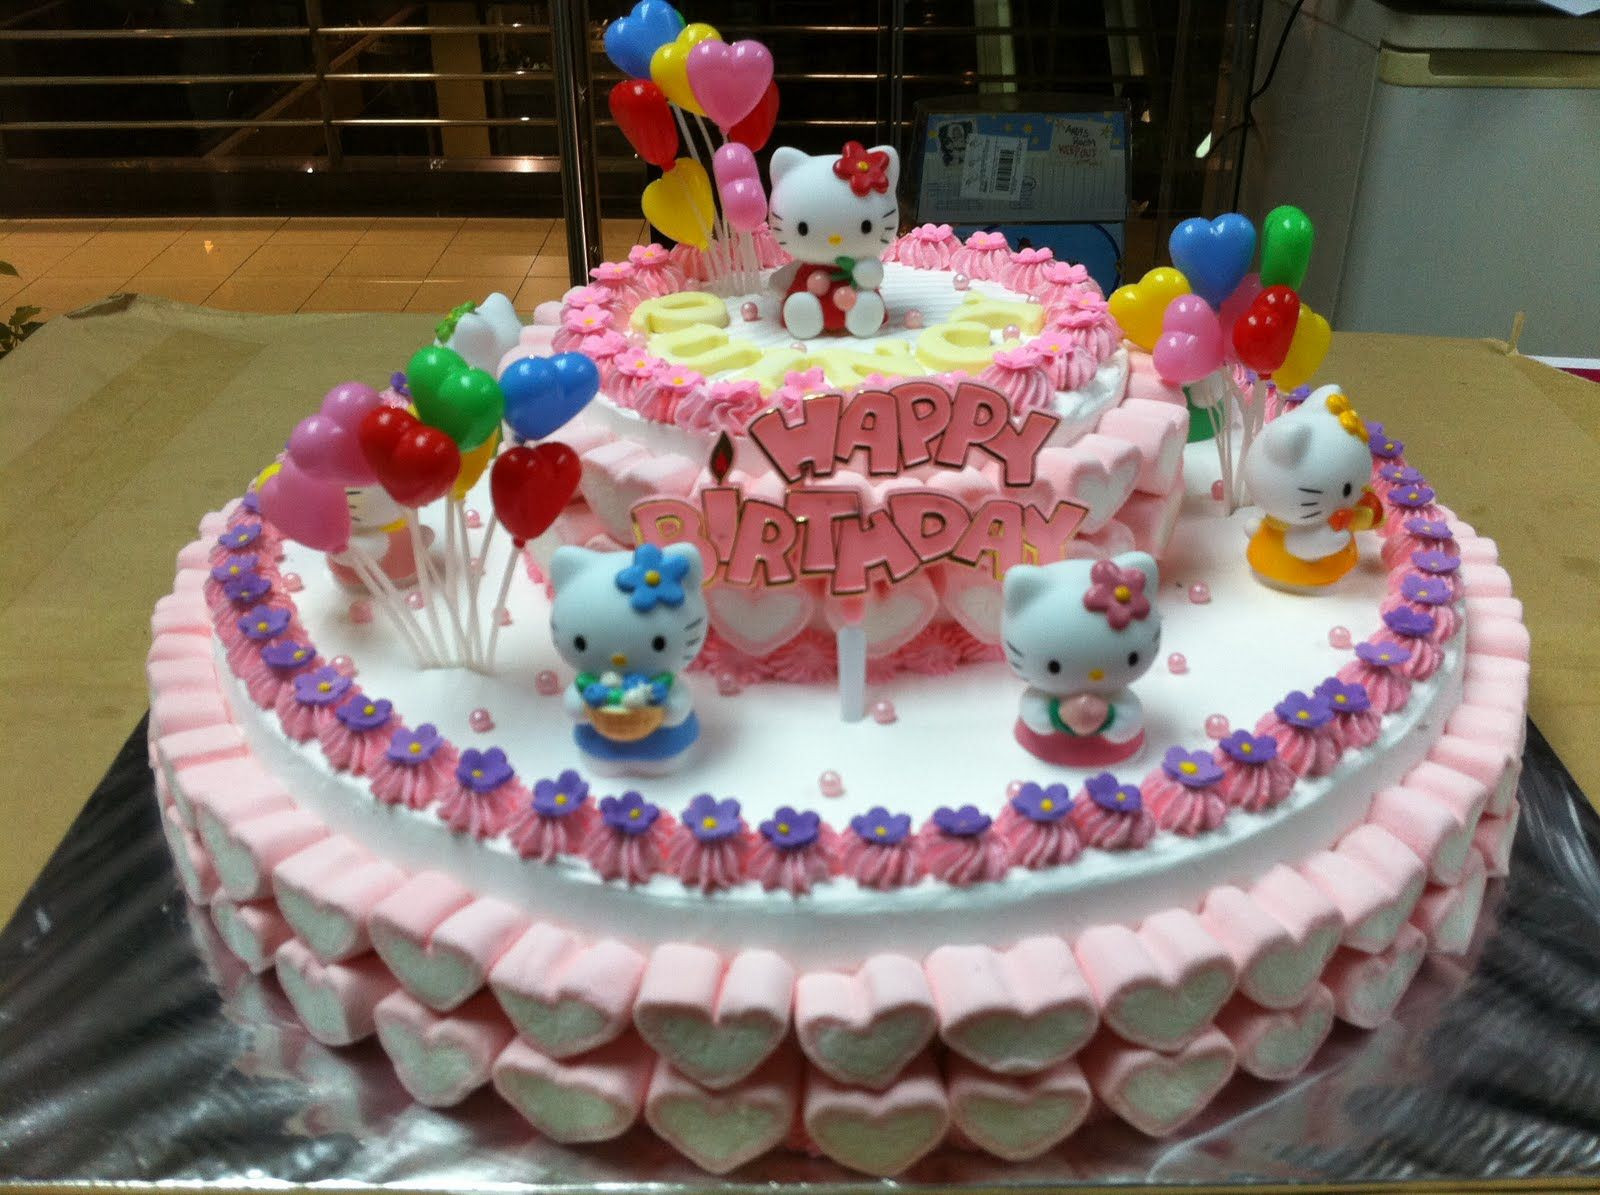 Best ideas about Order Birthday Cake Online Walmart . Save or Pin Walmart Bakery Birthday Cakes Now.